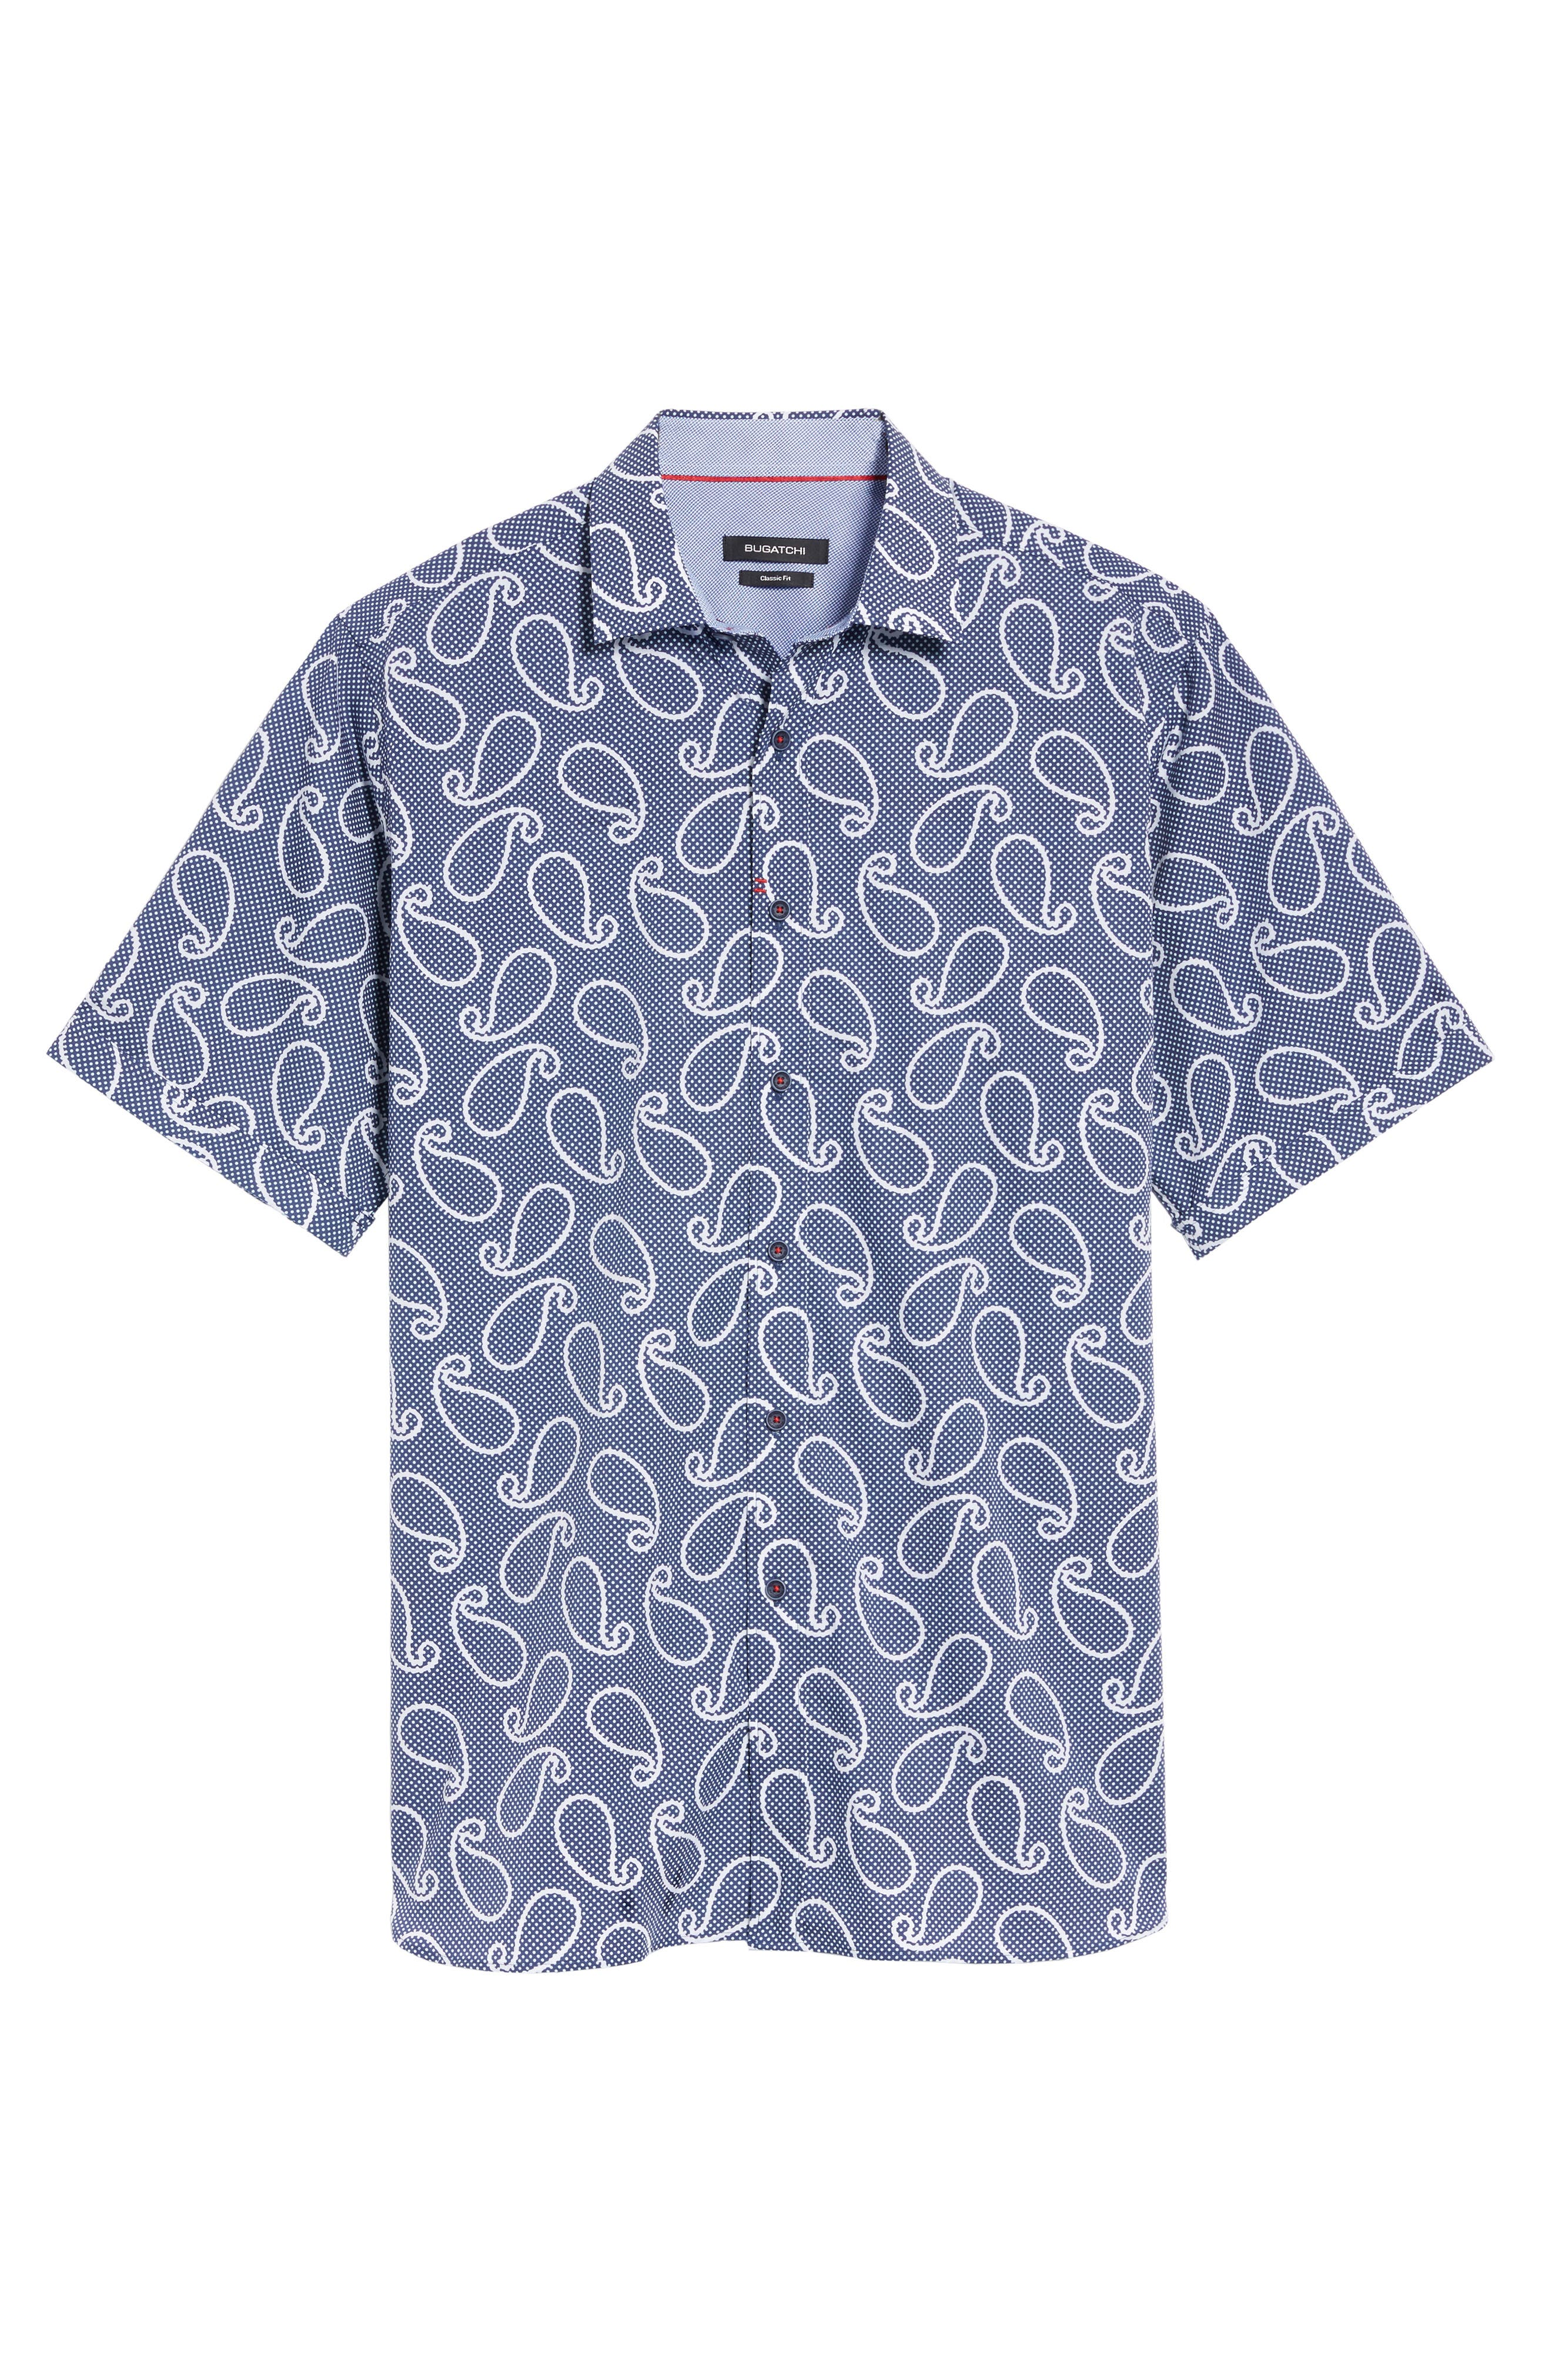 Classic Fit Print Short Sleeve Sport Shirt,                             Alternate thumbnail 6, color,                             Navy